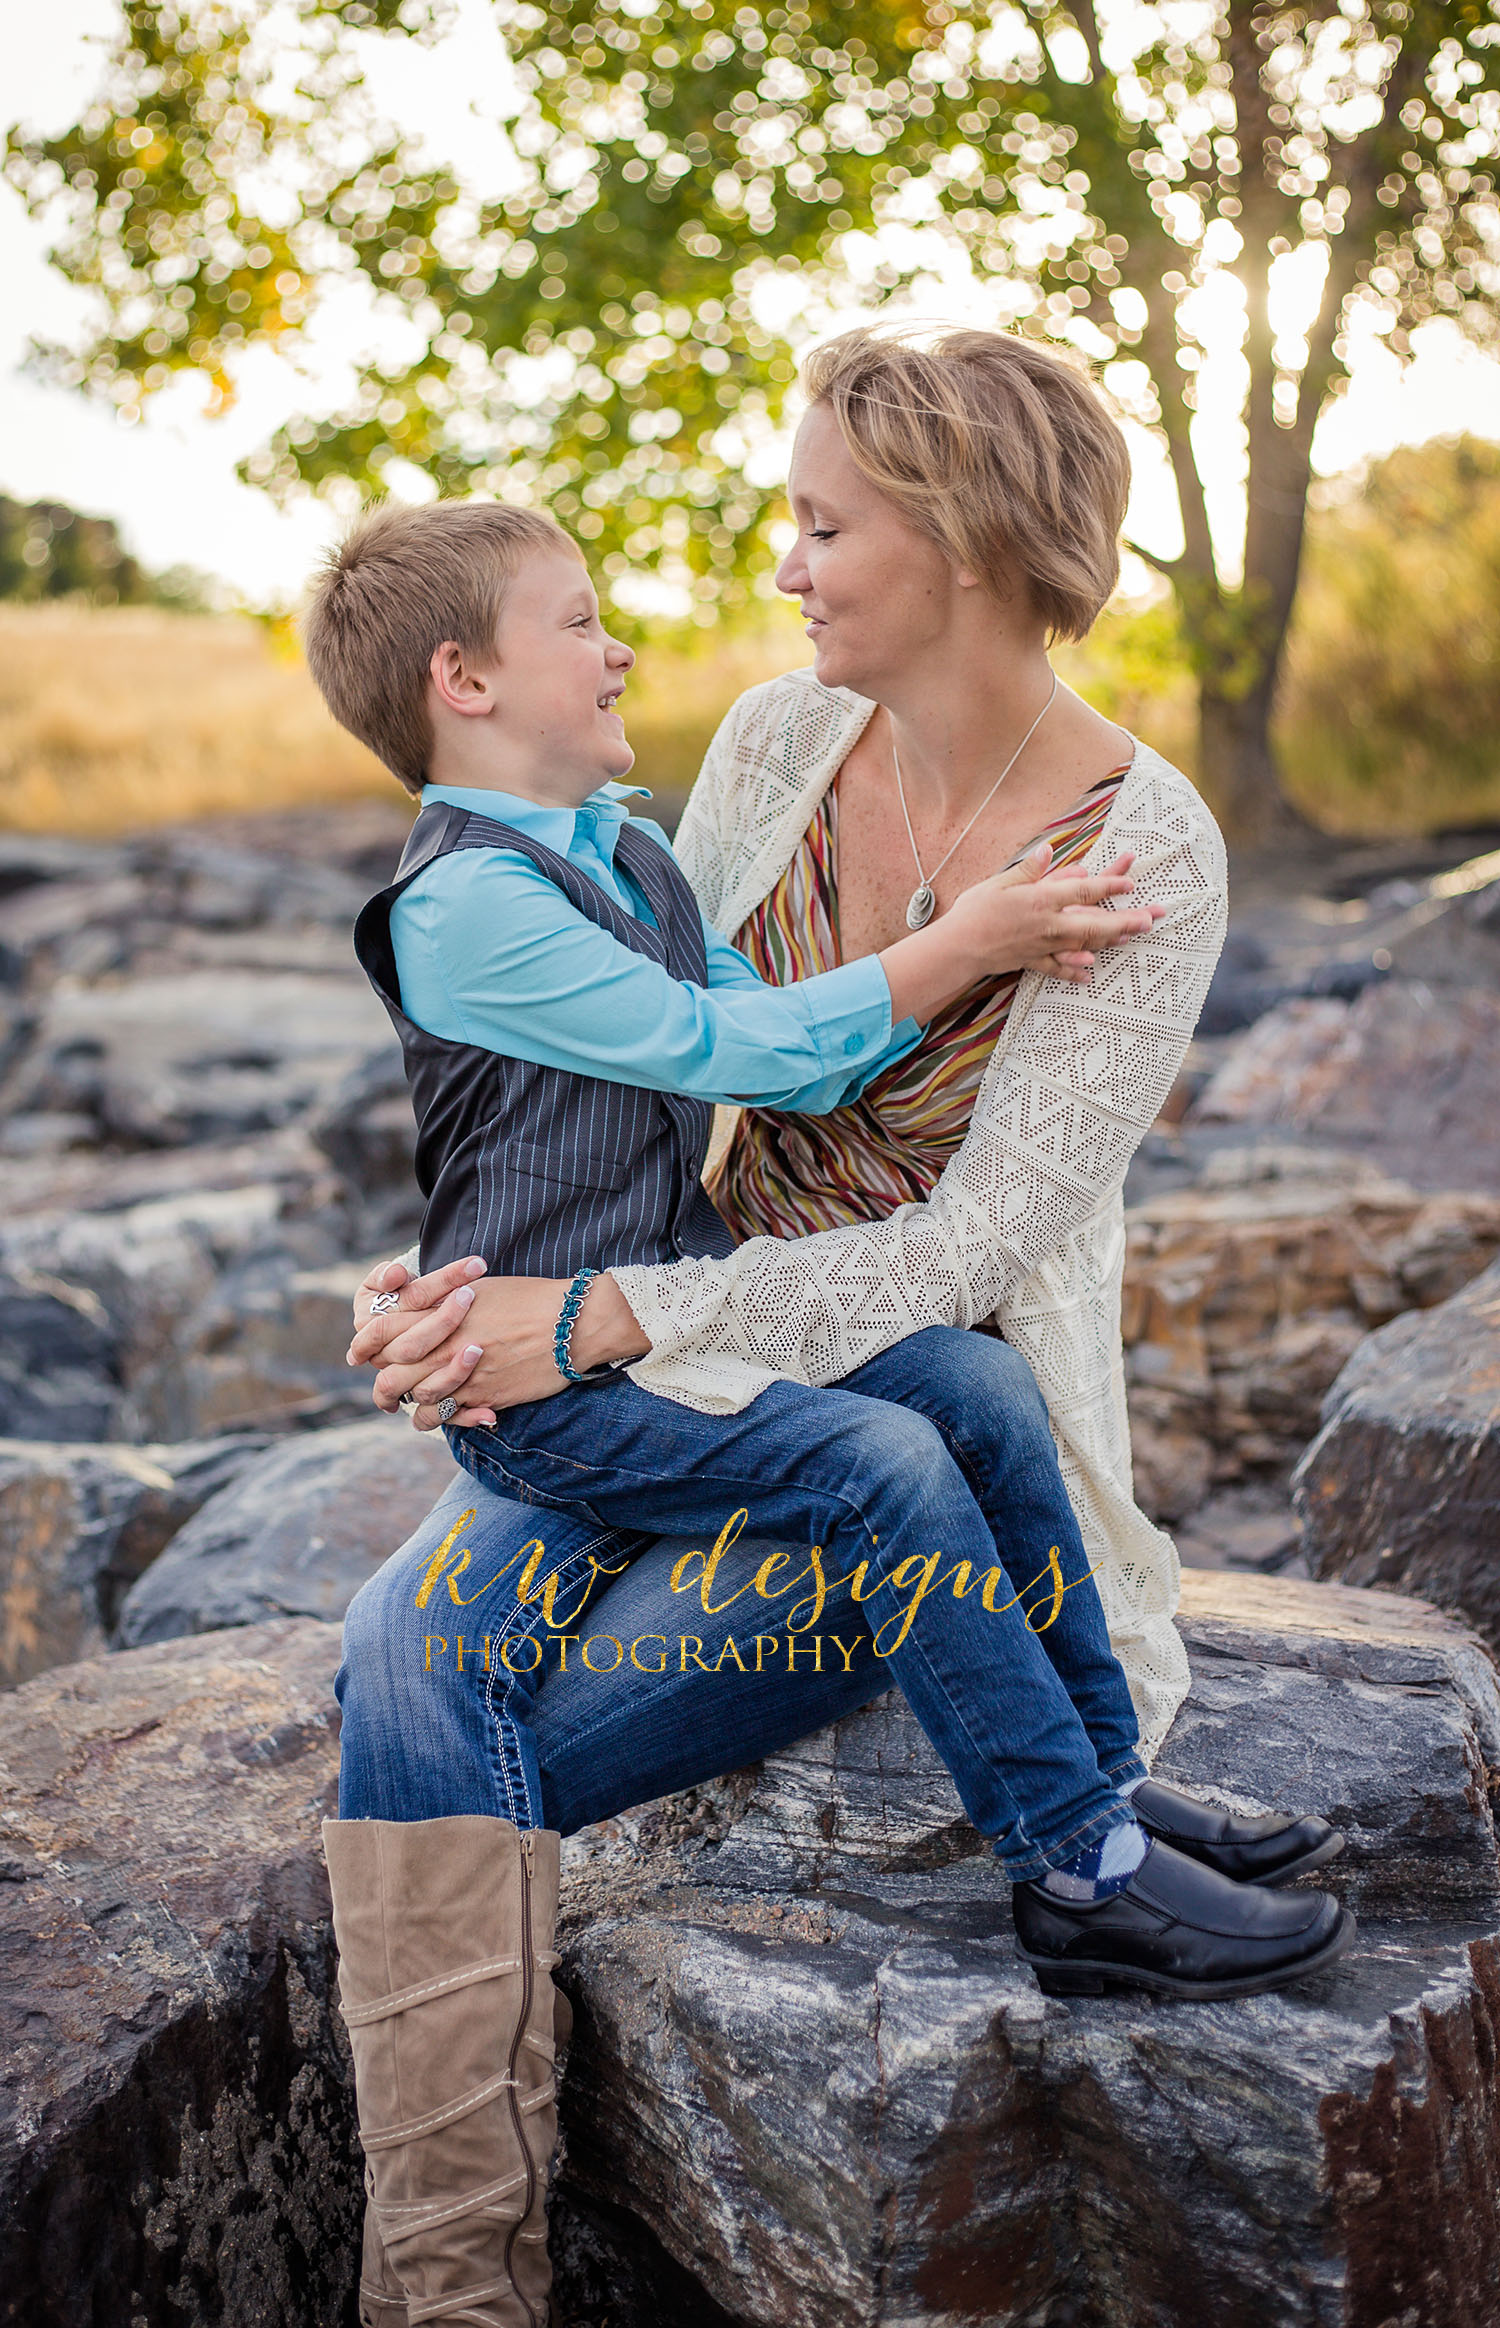 Lakewood Colorado Family Photographer, KW Designs Photography